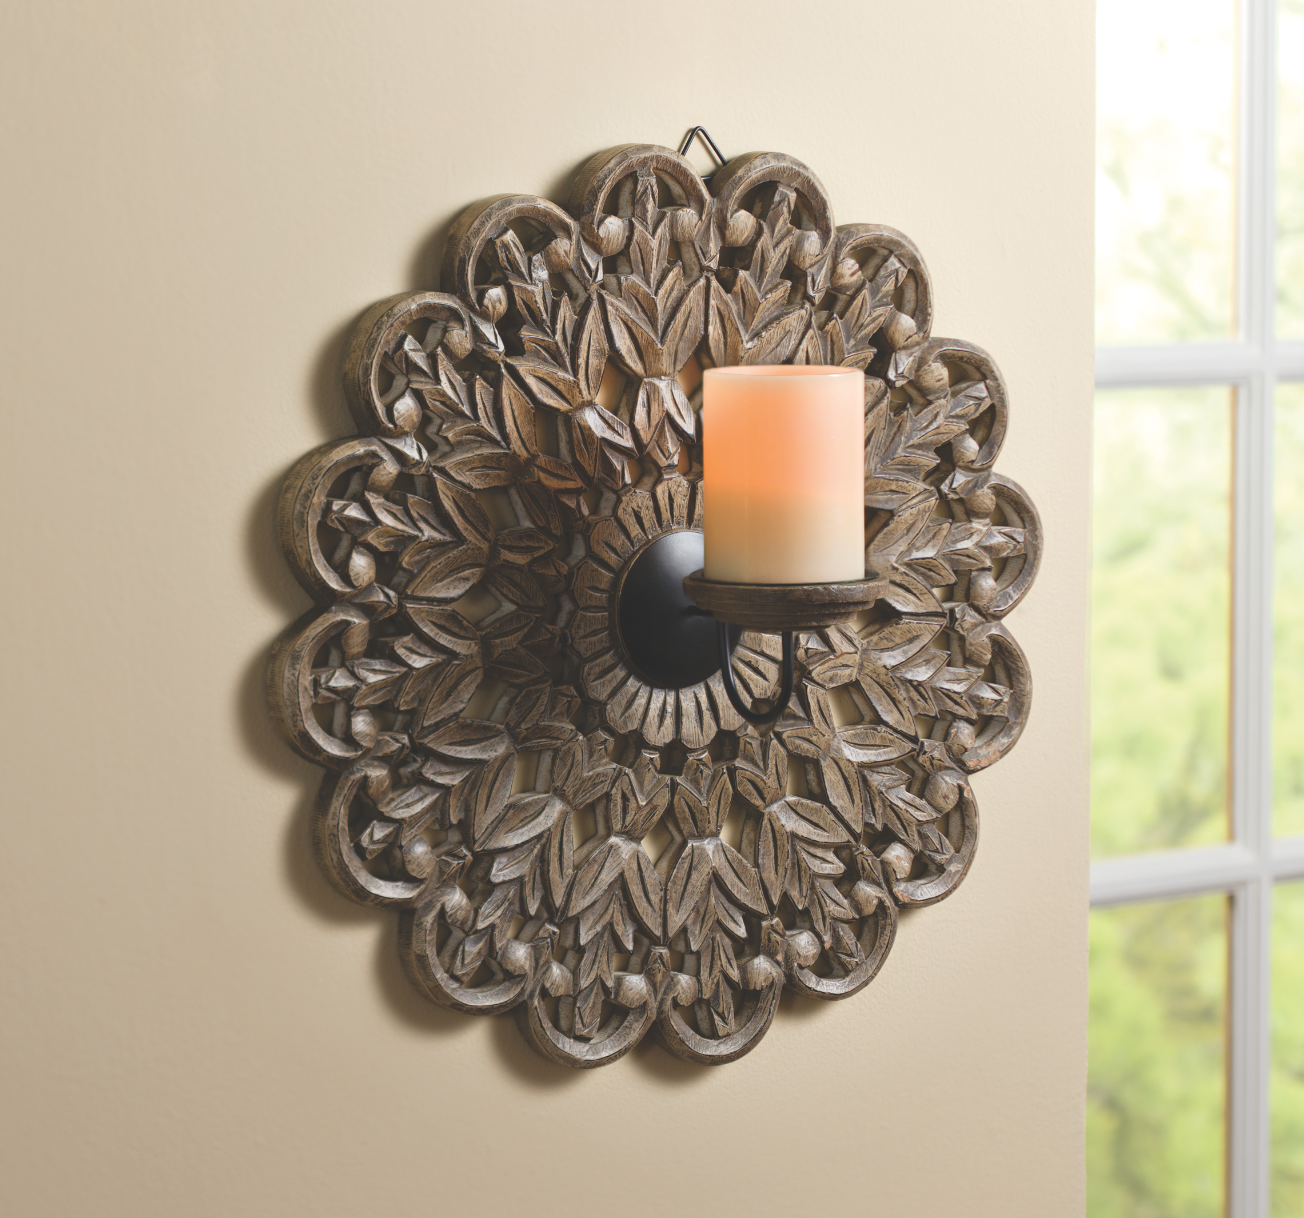 Intricately Carved Wall Candleholder ($25). Every UNICEF gift supports our lifesaving work!